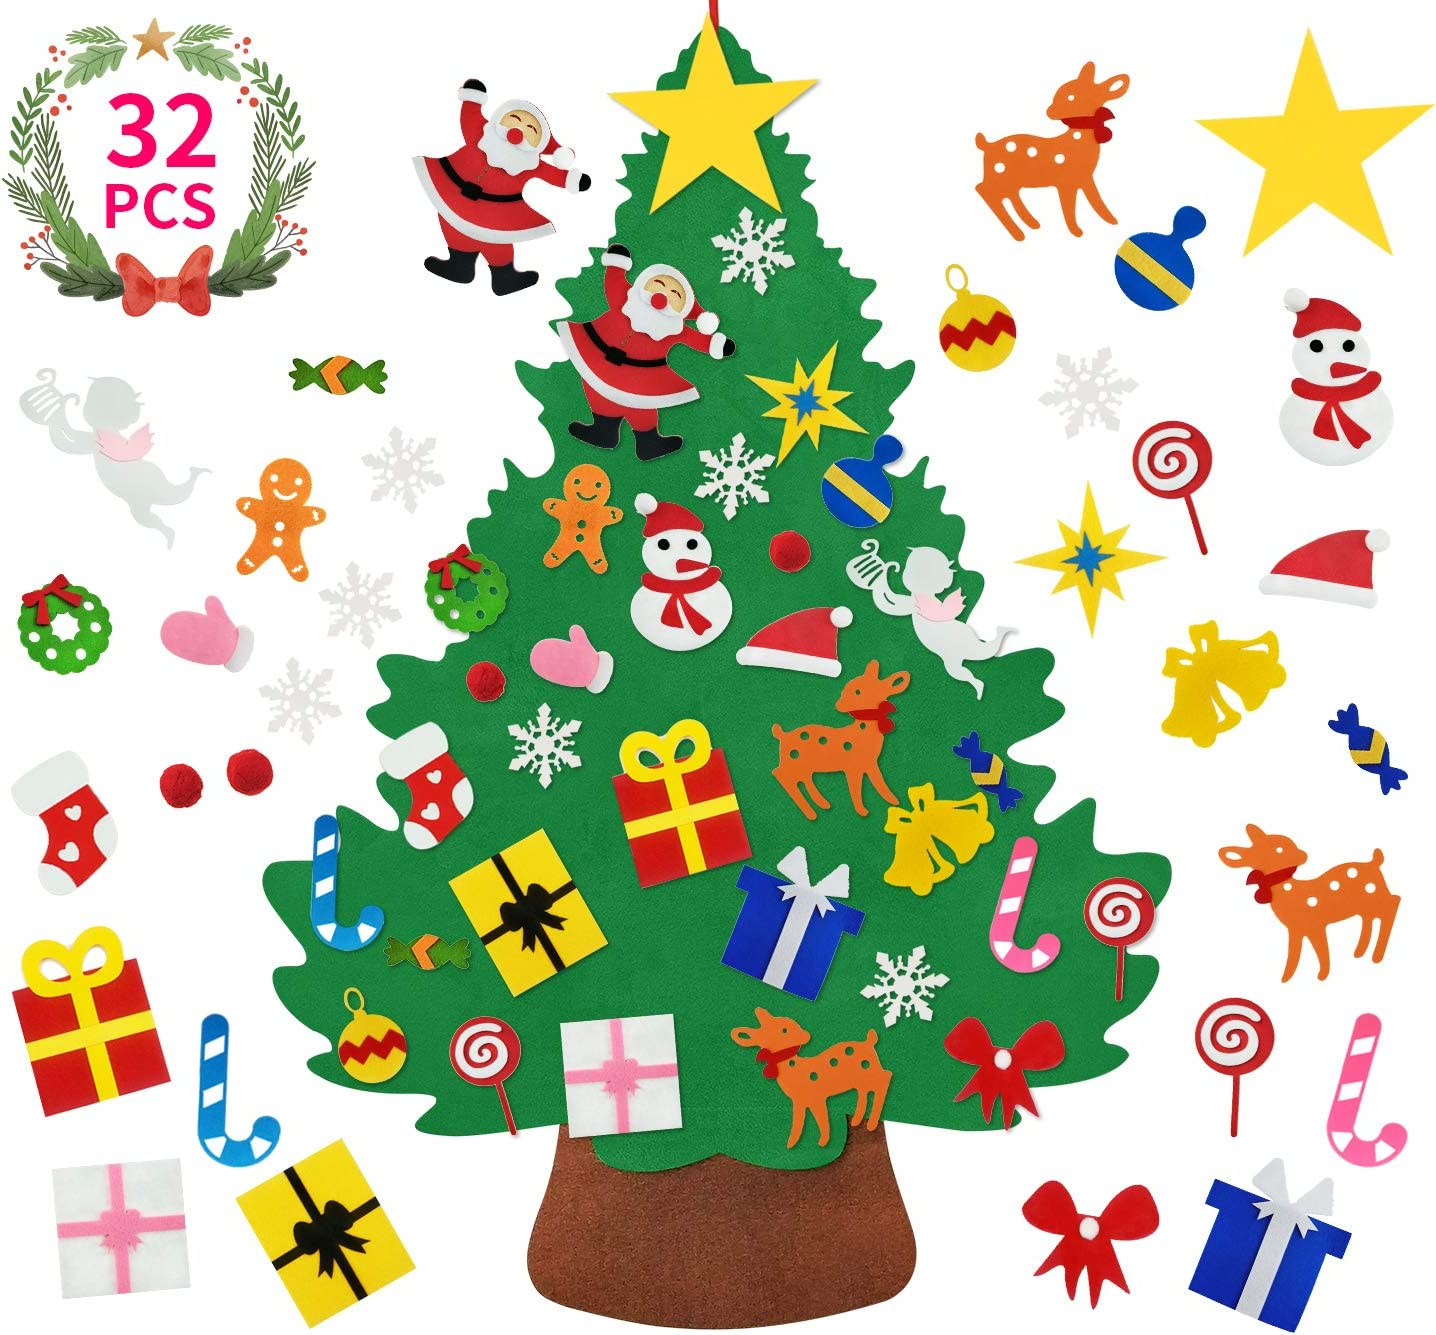 Felt Christmas Tree for Toddlers-3.3 FT Upgrade 3D DIY Set for Kids with 32 Pieces of Xmas Gifts Ornament Decor, Wall Hanging Christmas Tree Decorations